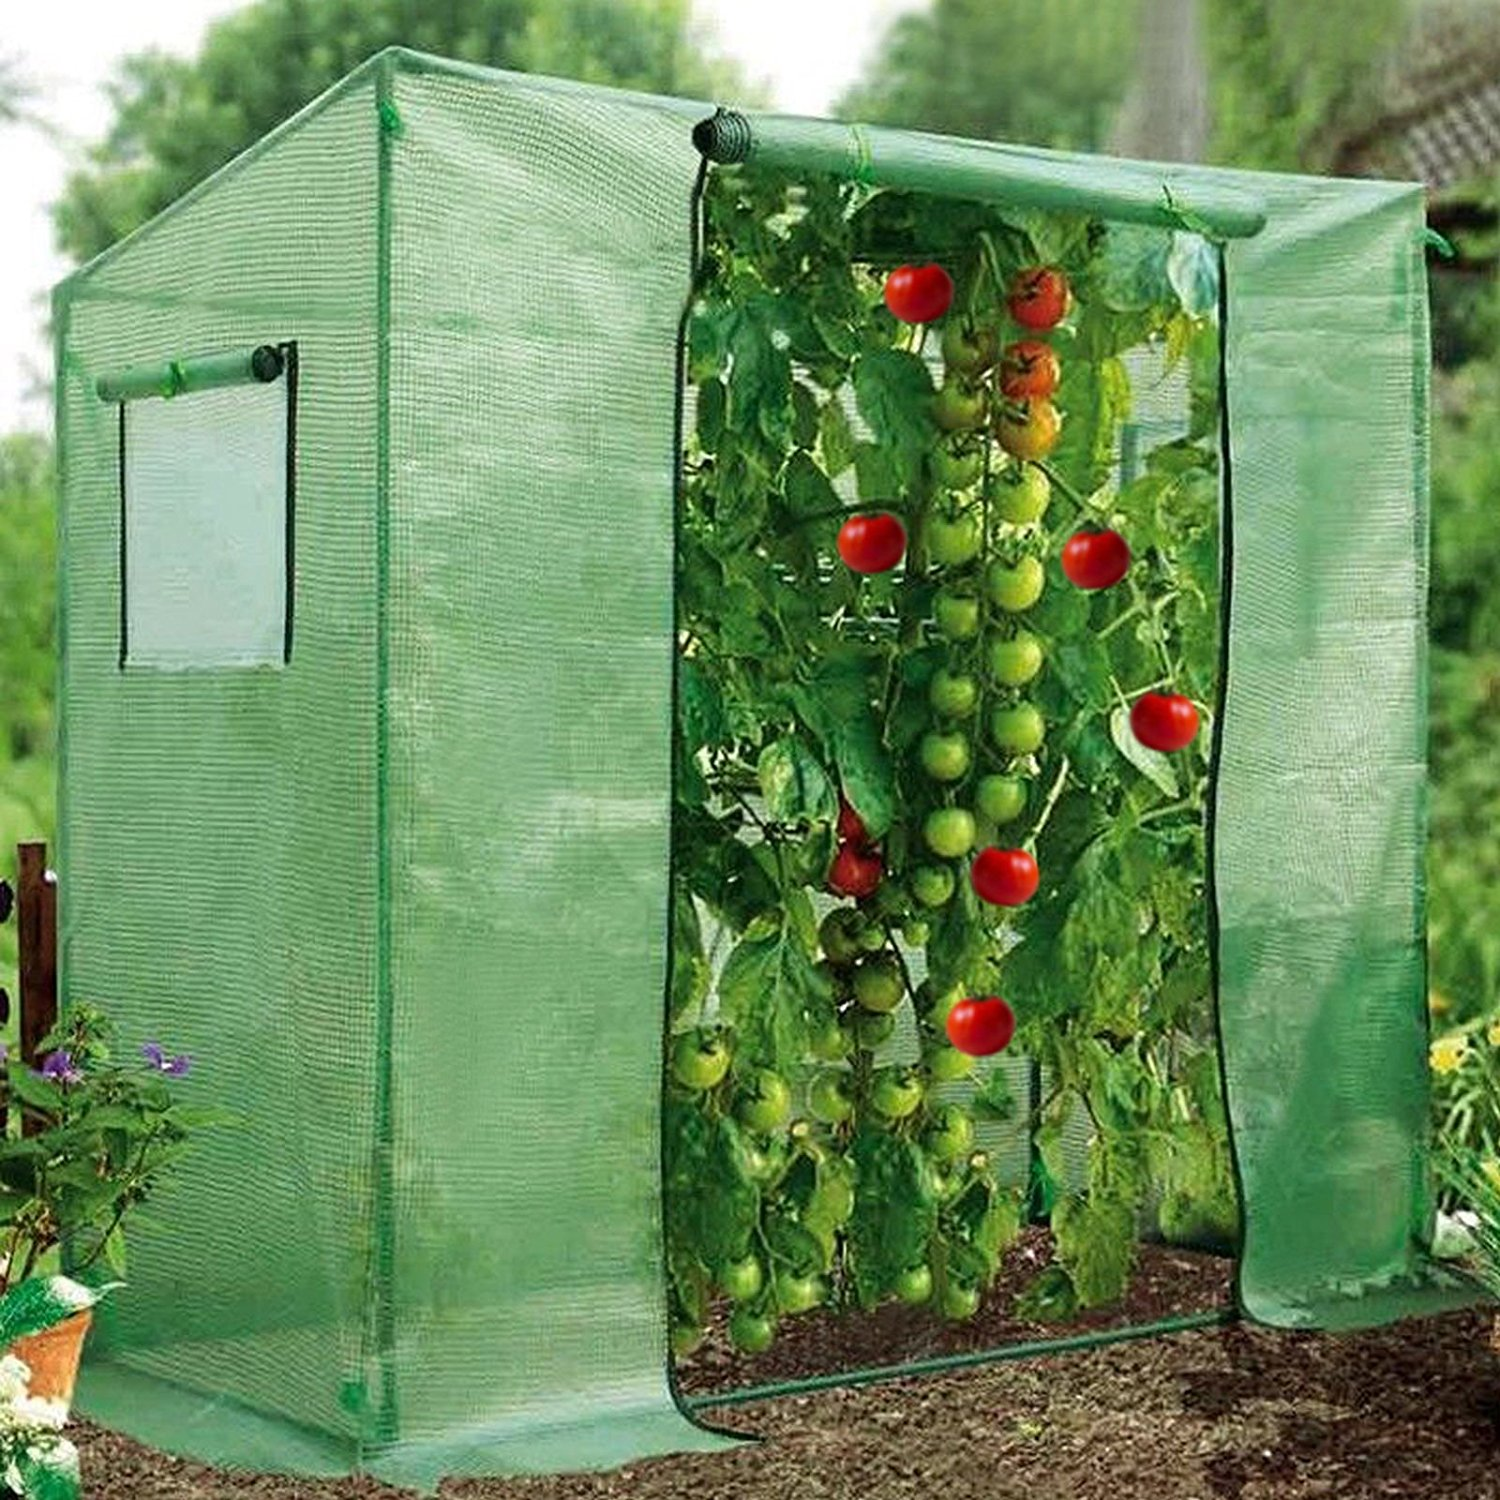 7' x3' x6' Tomato Walking-in Greenhouse Outdoor Plant Gardening Green House